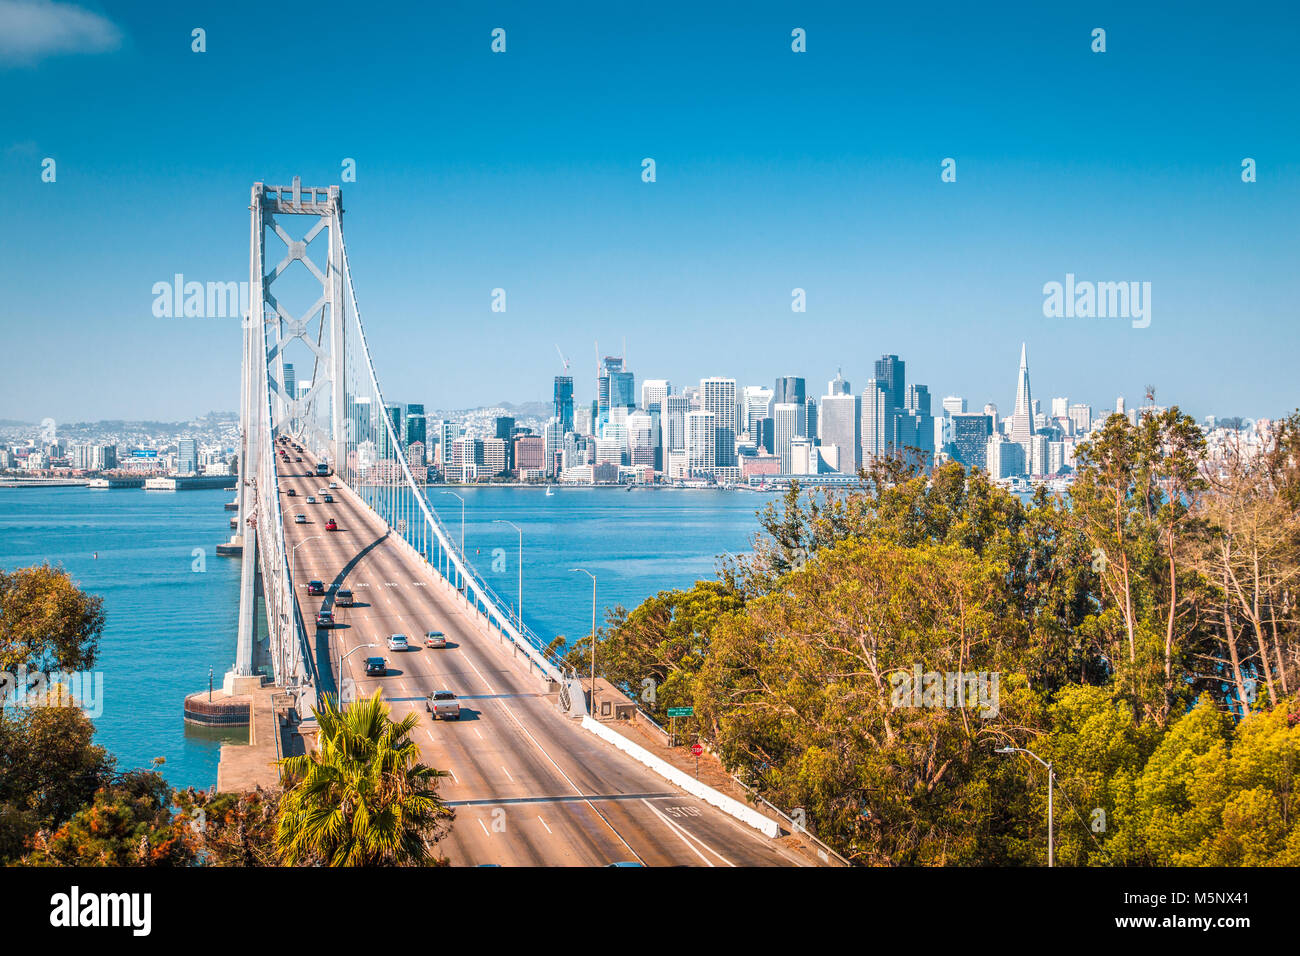 Classic panoramic view of San Francisco skyline with famous Oakland Bay Bridge illuminated on a beautiful sunny - Stock Image